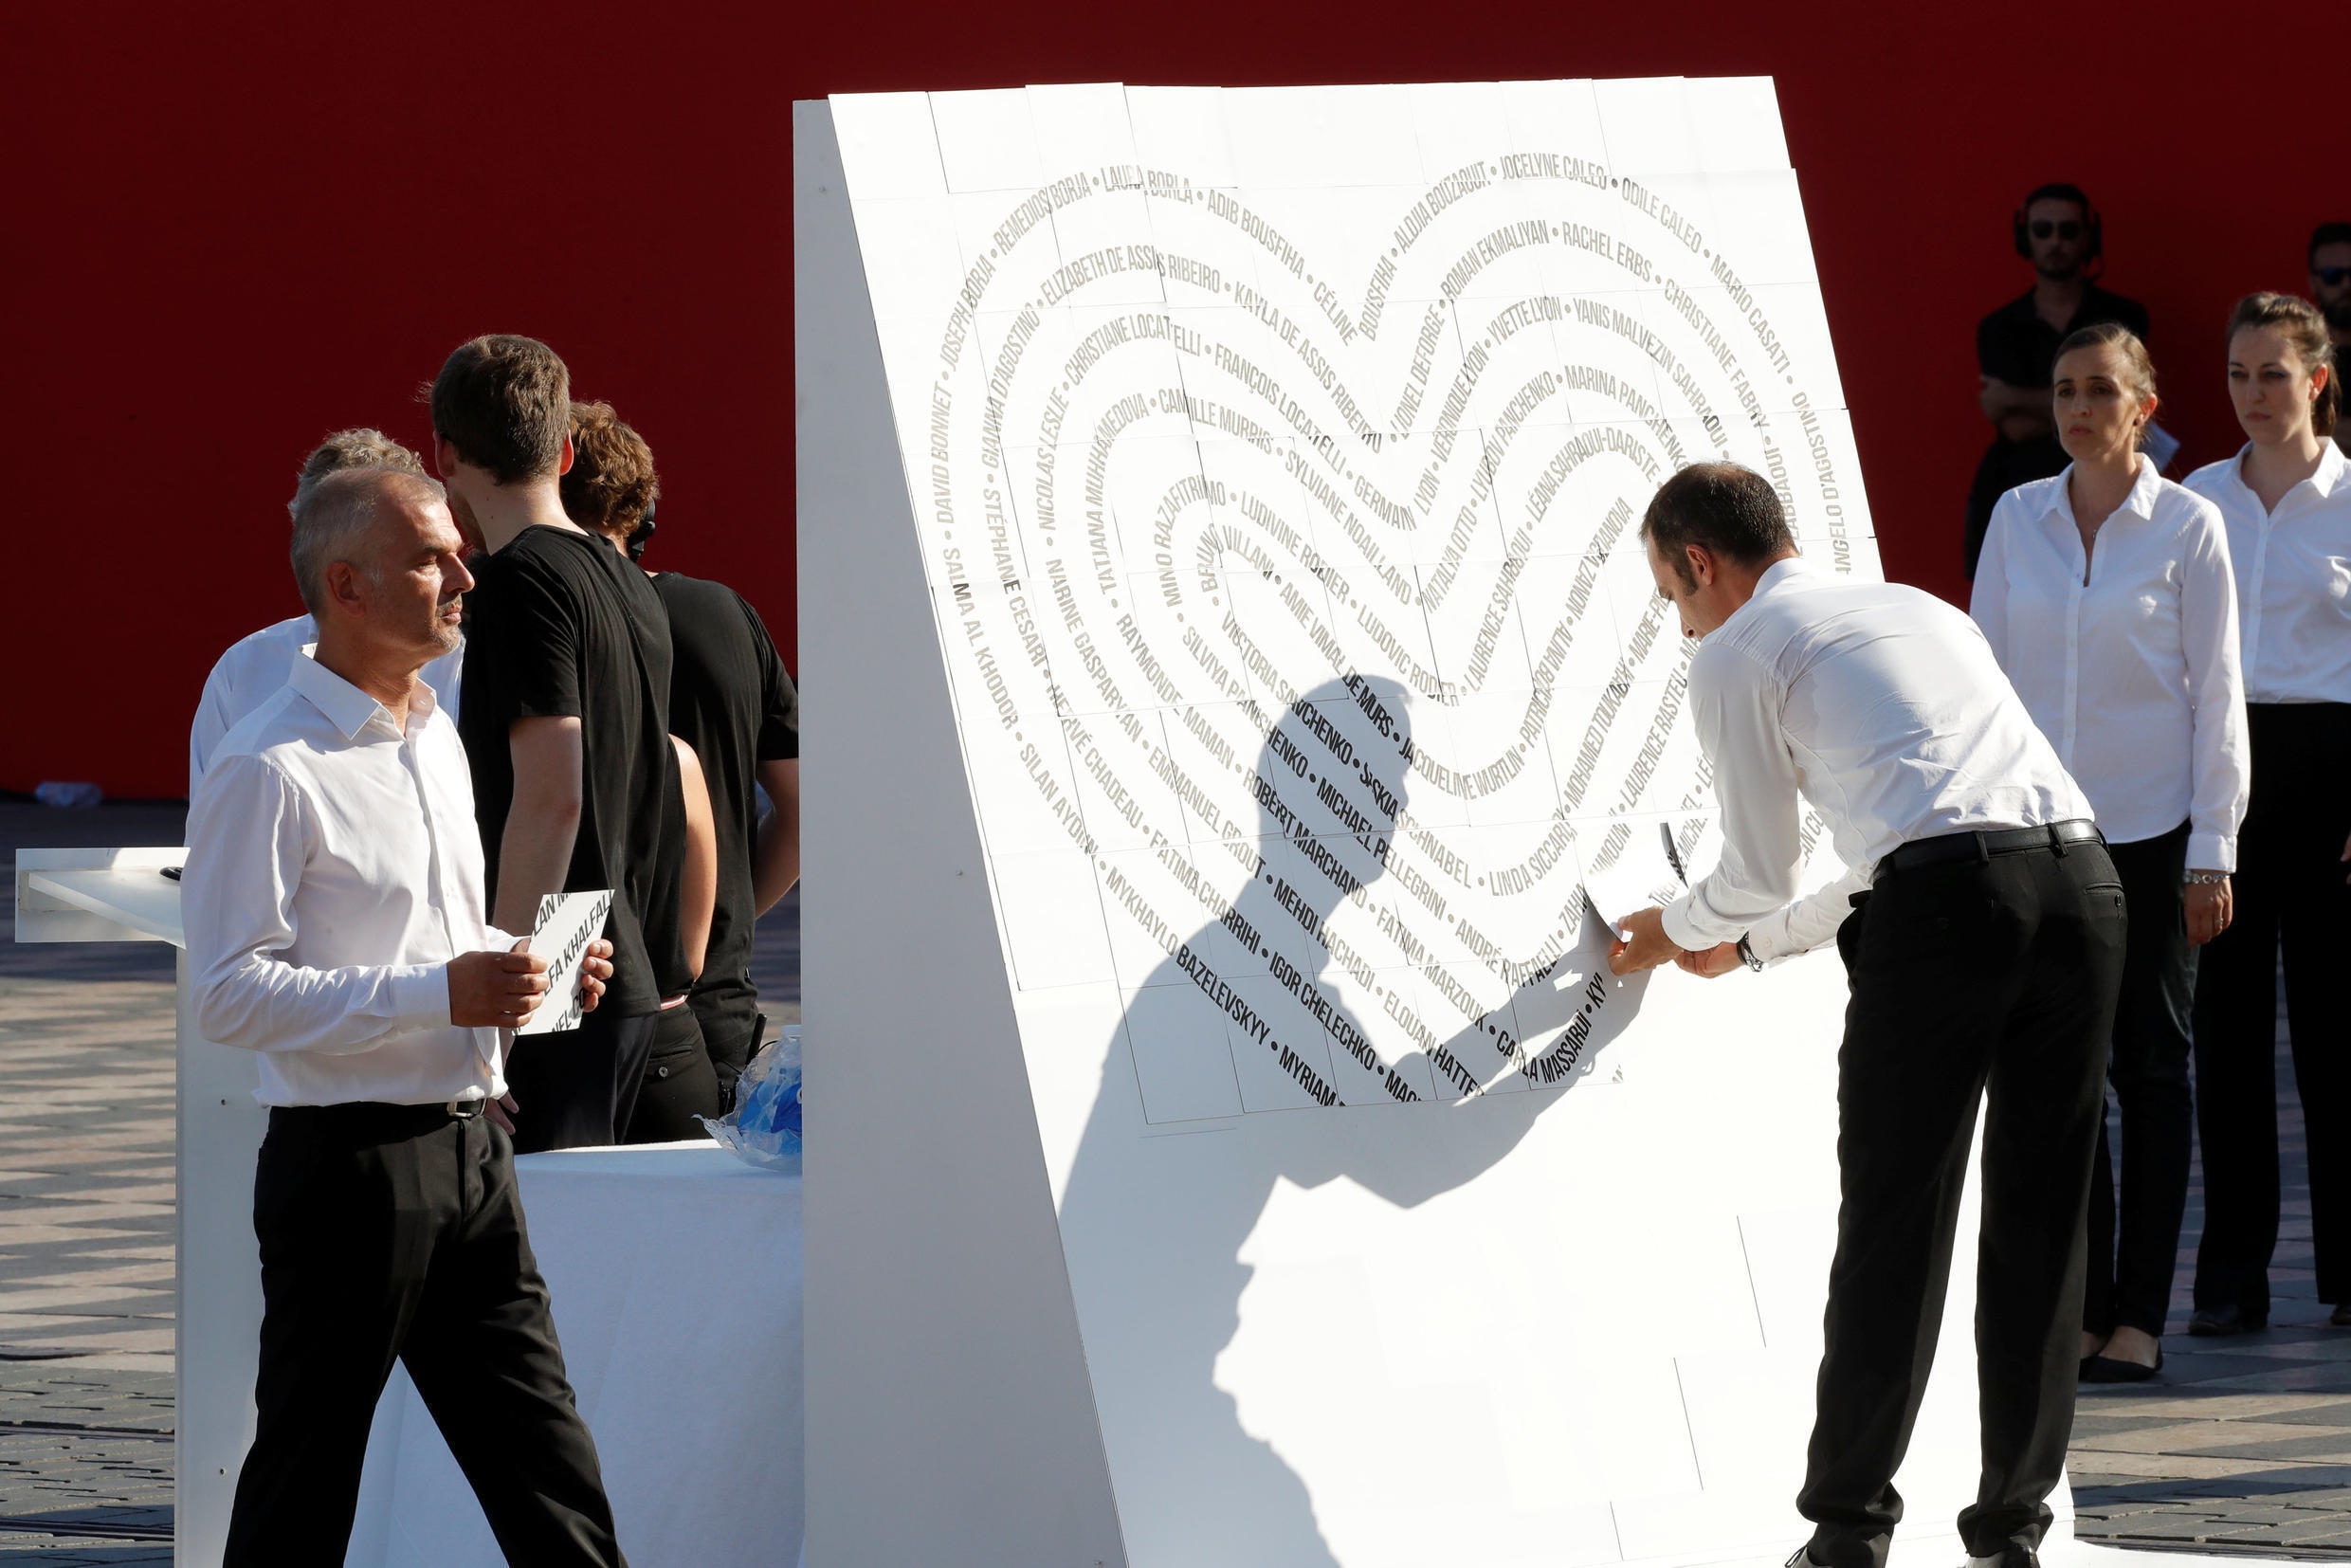 People stick the names of the 86 victims to form a heart during the commemorative ceremony for last year's July 14 Bastille Day fatal truck attack on the Promenade des Anglais in Nice, France, July 14, 2017.